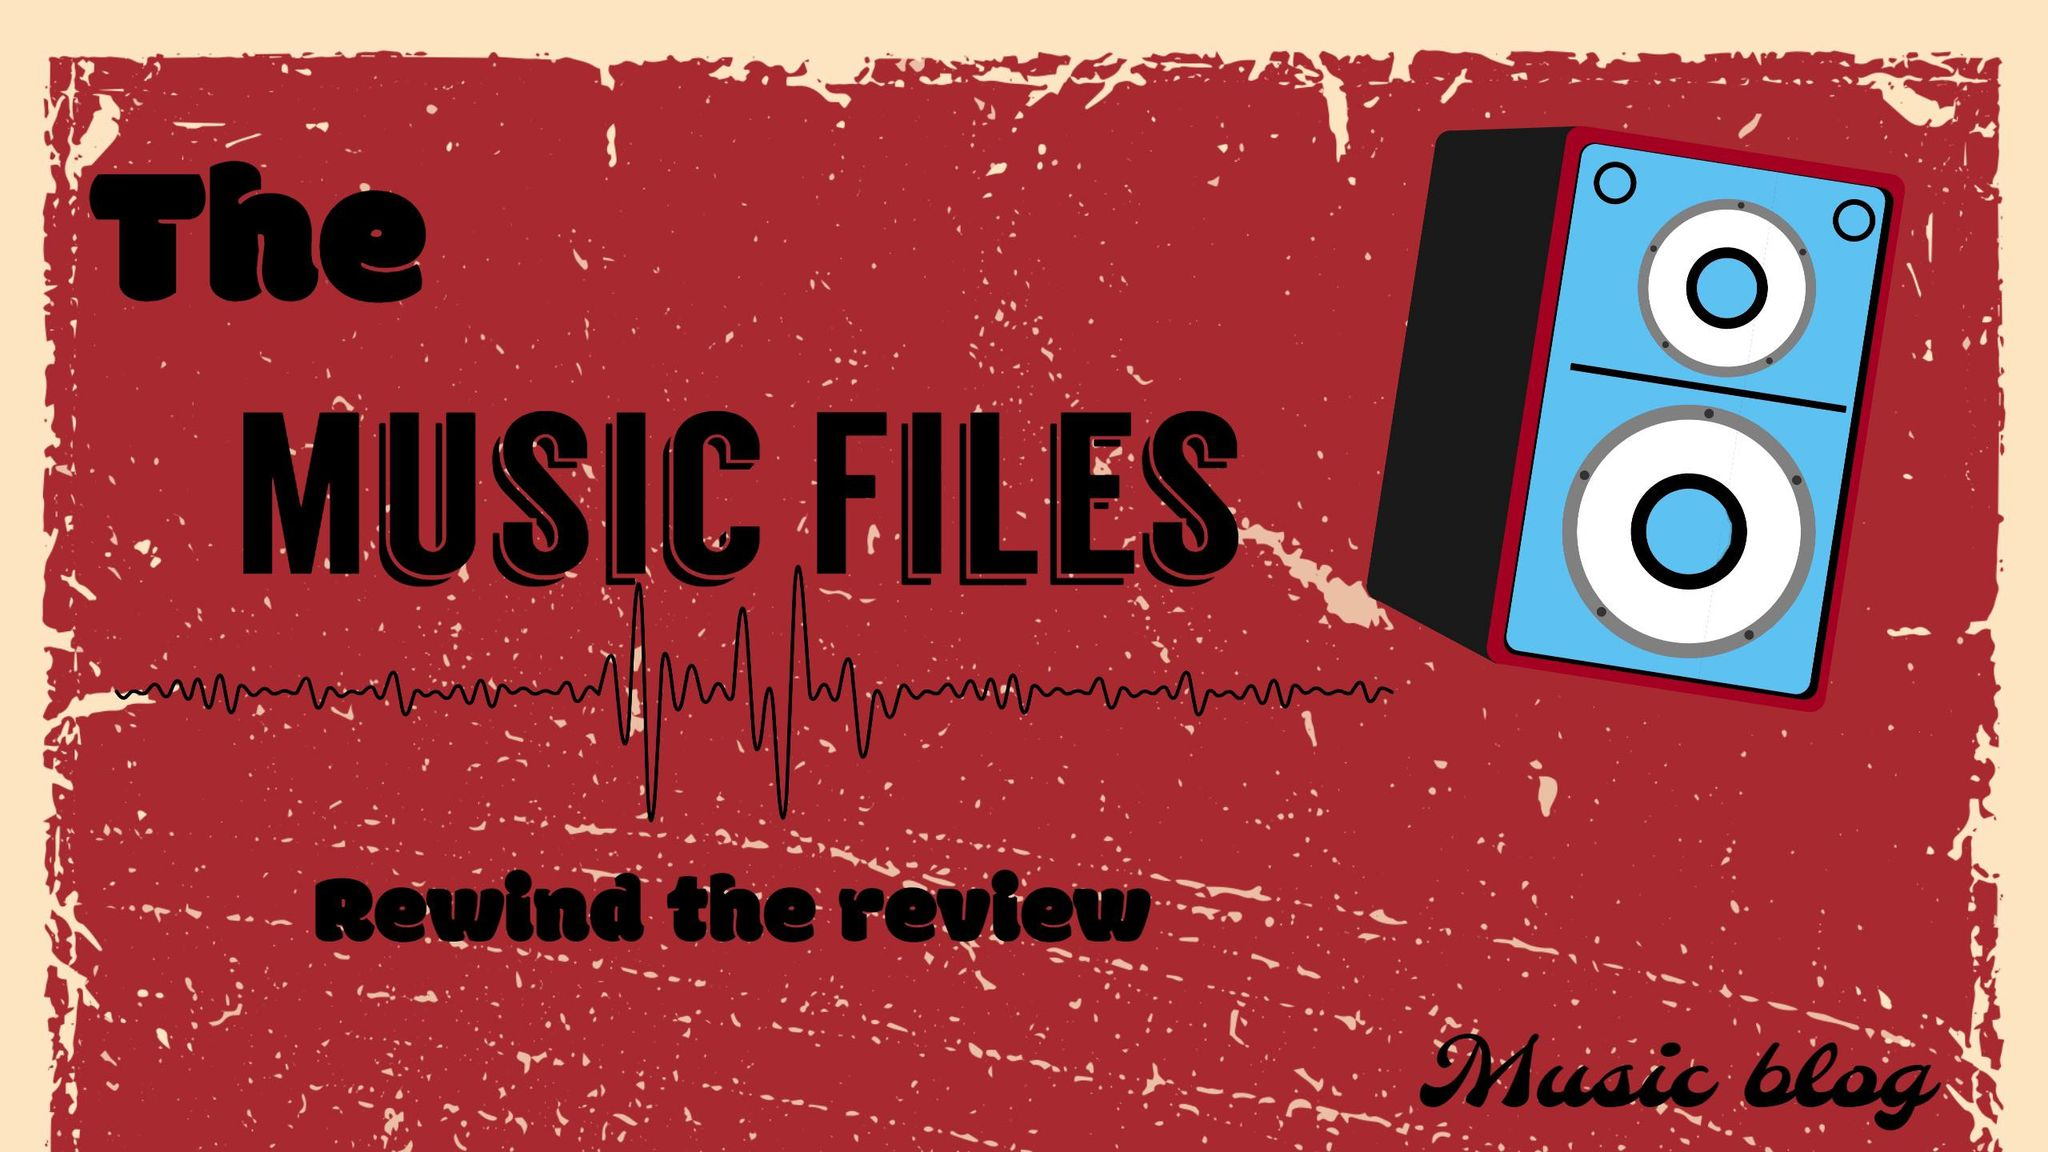 The Music Files